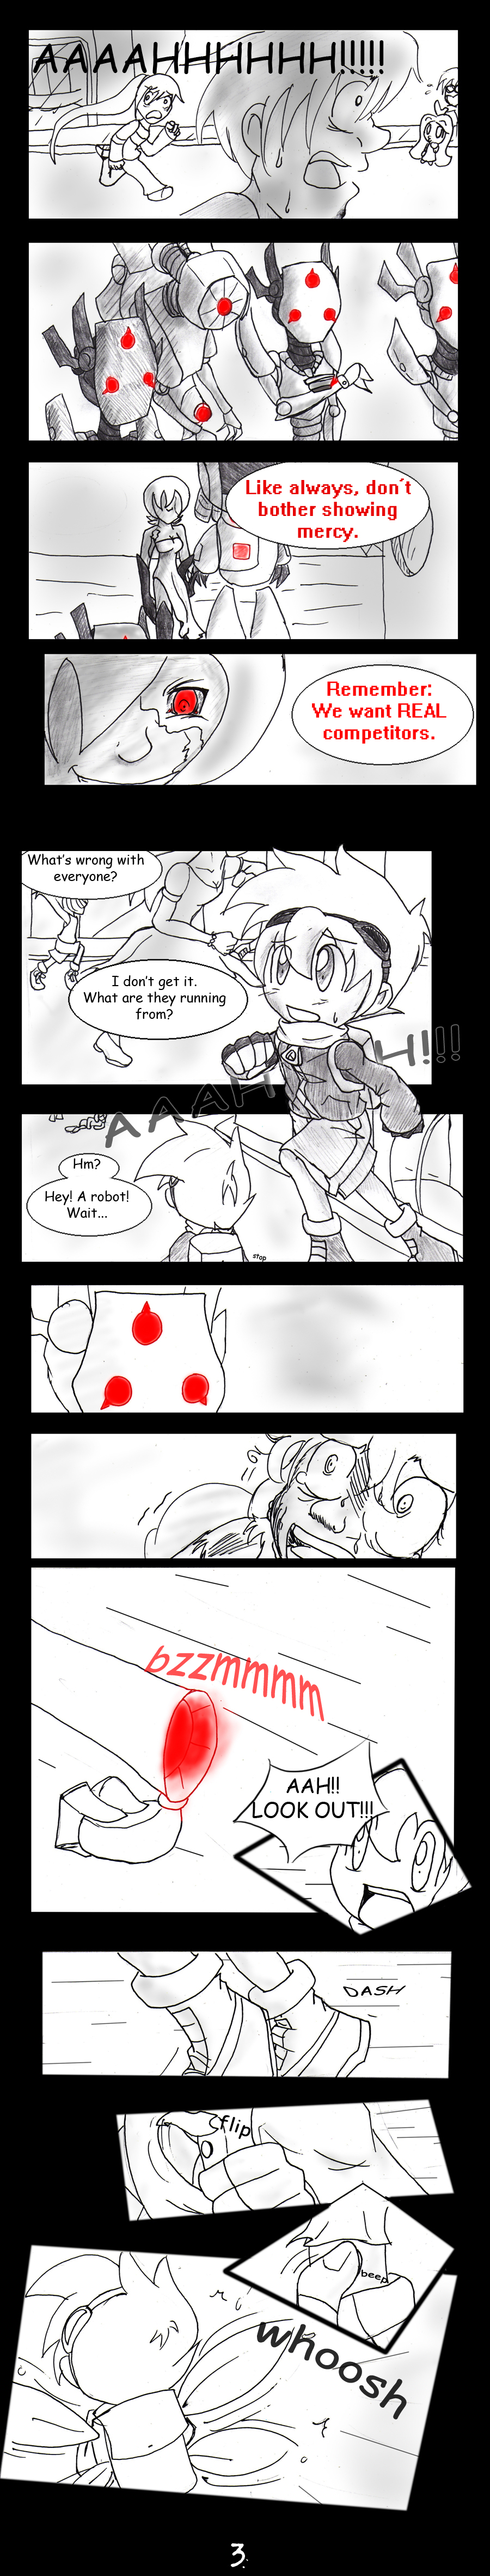 Ebon Spire Audition - Pg 3 by SonicHearts